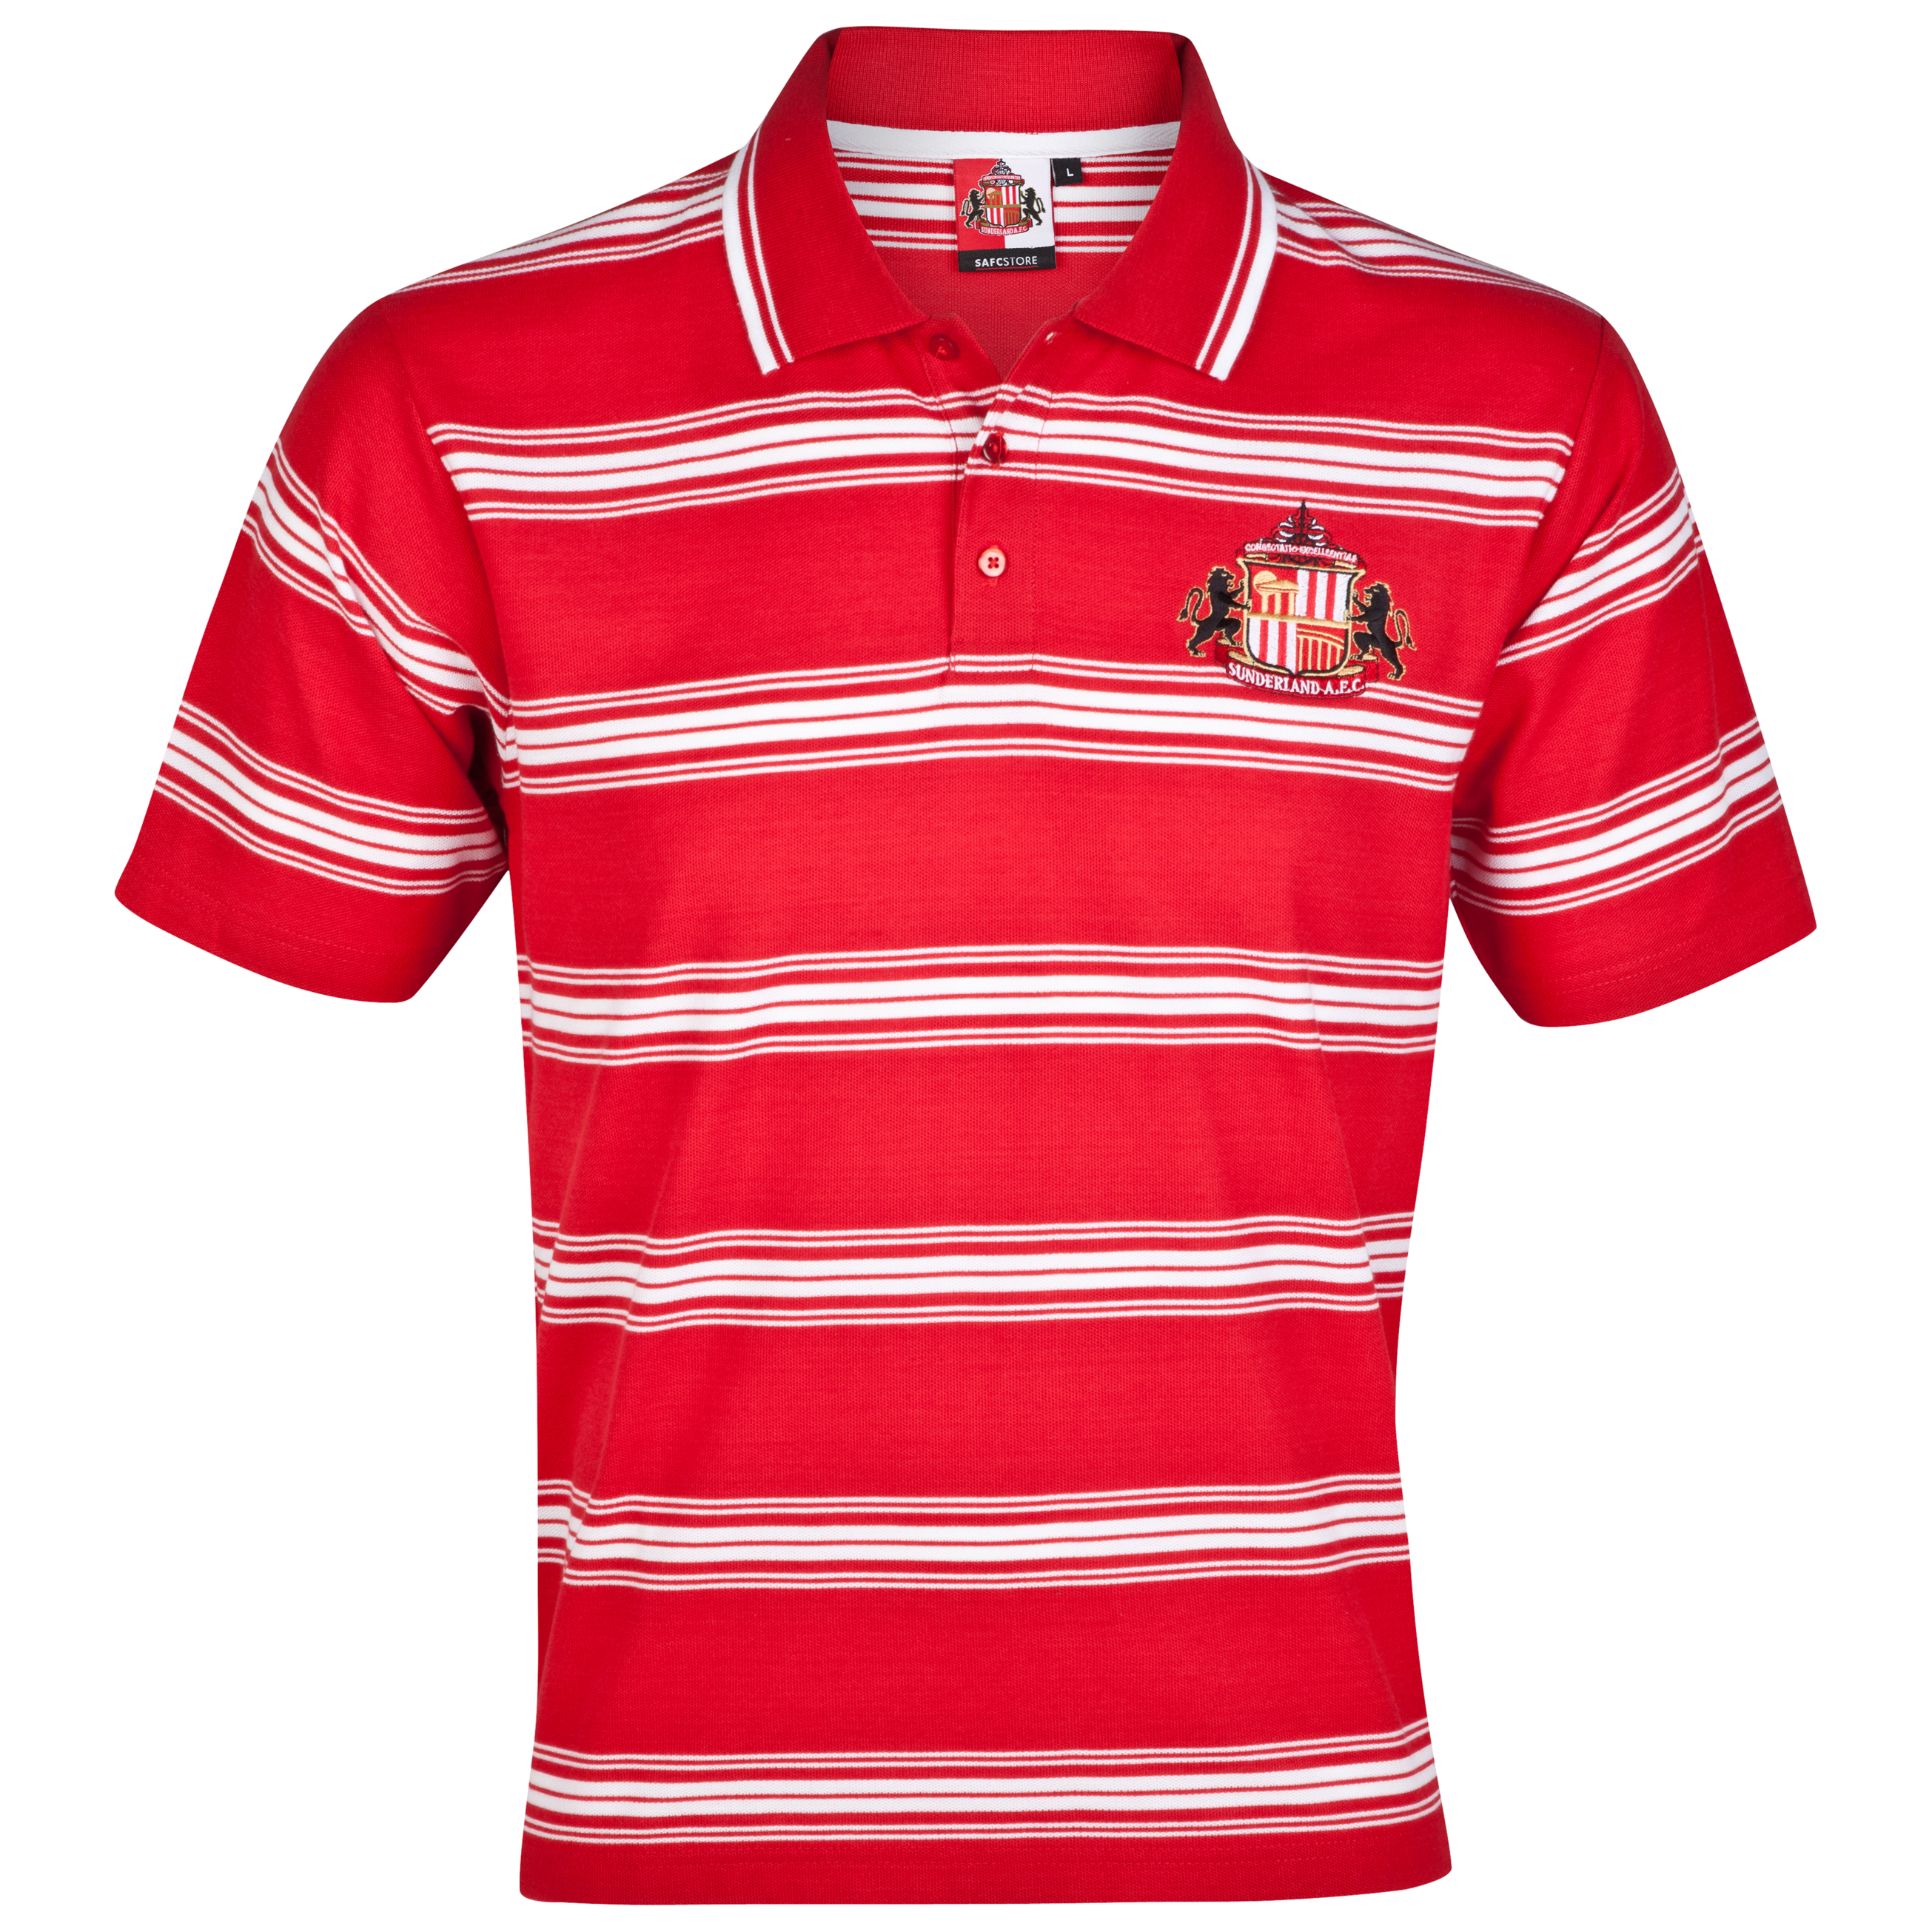 Sunderland Essential Precise Stripe Polo Top - Red - Older Boys